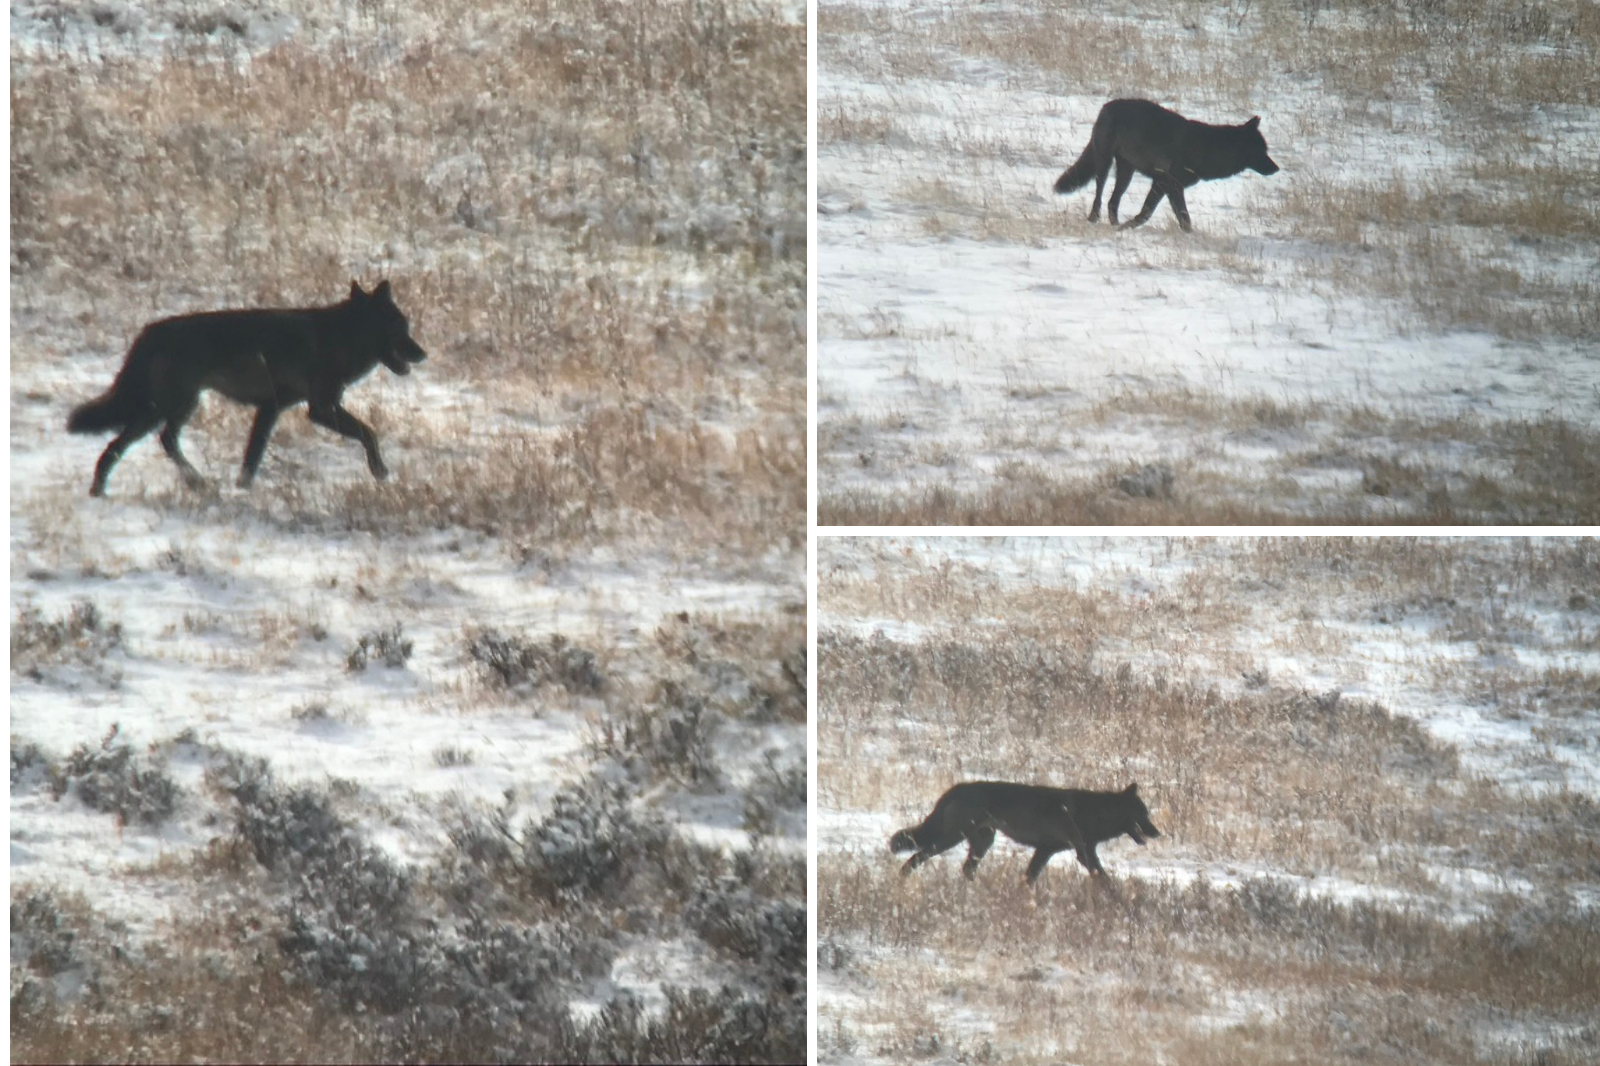 Wolves in Yellowstone, as seen through a scope on a wildlife tour